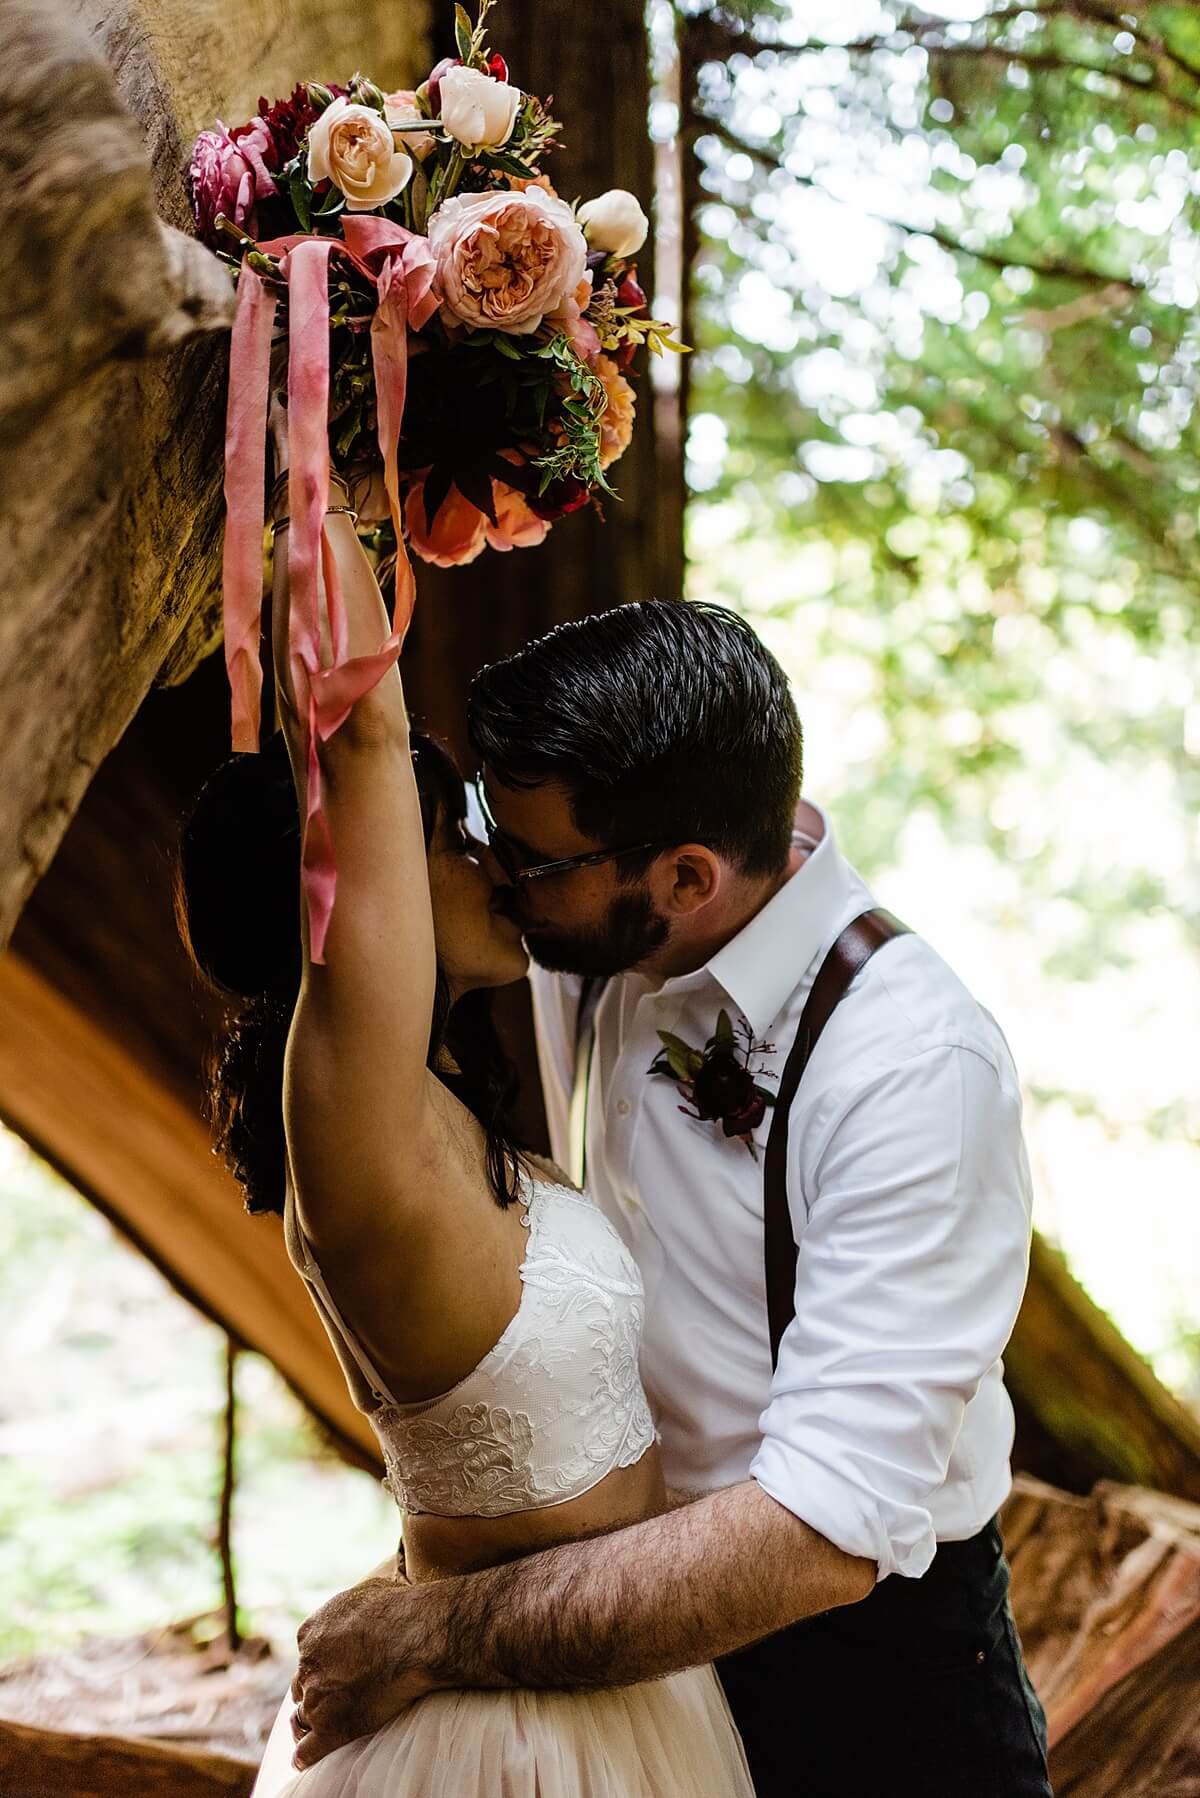 Allison-Brooks-Jedediah-Smiith-Redwoods-Adventure-Elopement-Wedding-S-Photography-Blog_0051.jpg